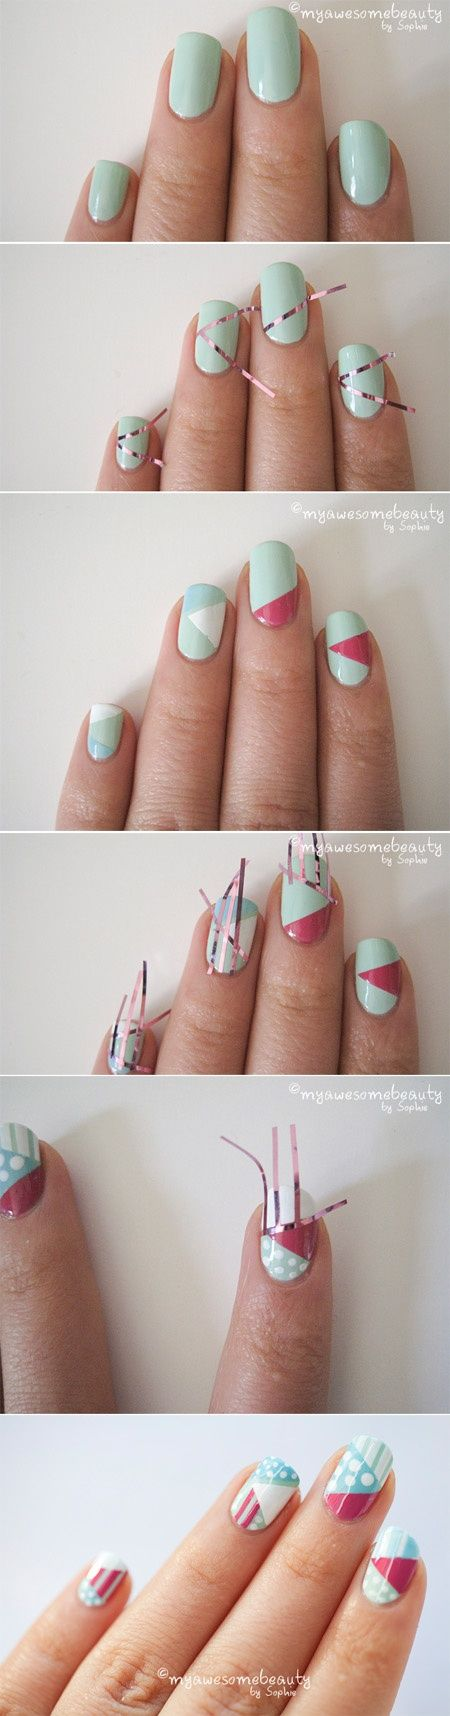 This article is in Nails , and it is about fashion, featured, Manicure, Manicure Ideas, Nail